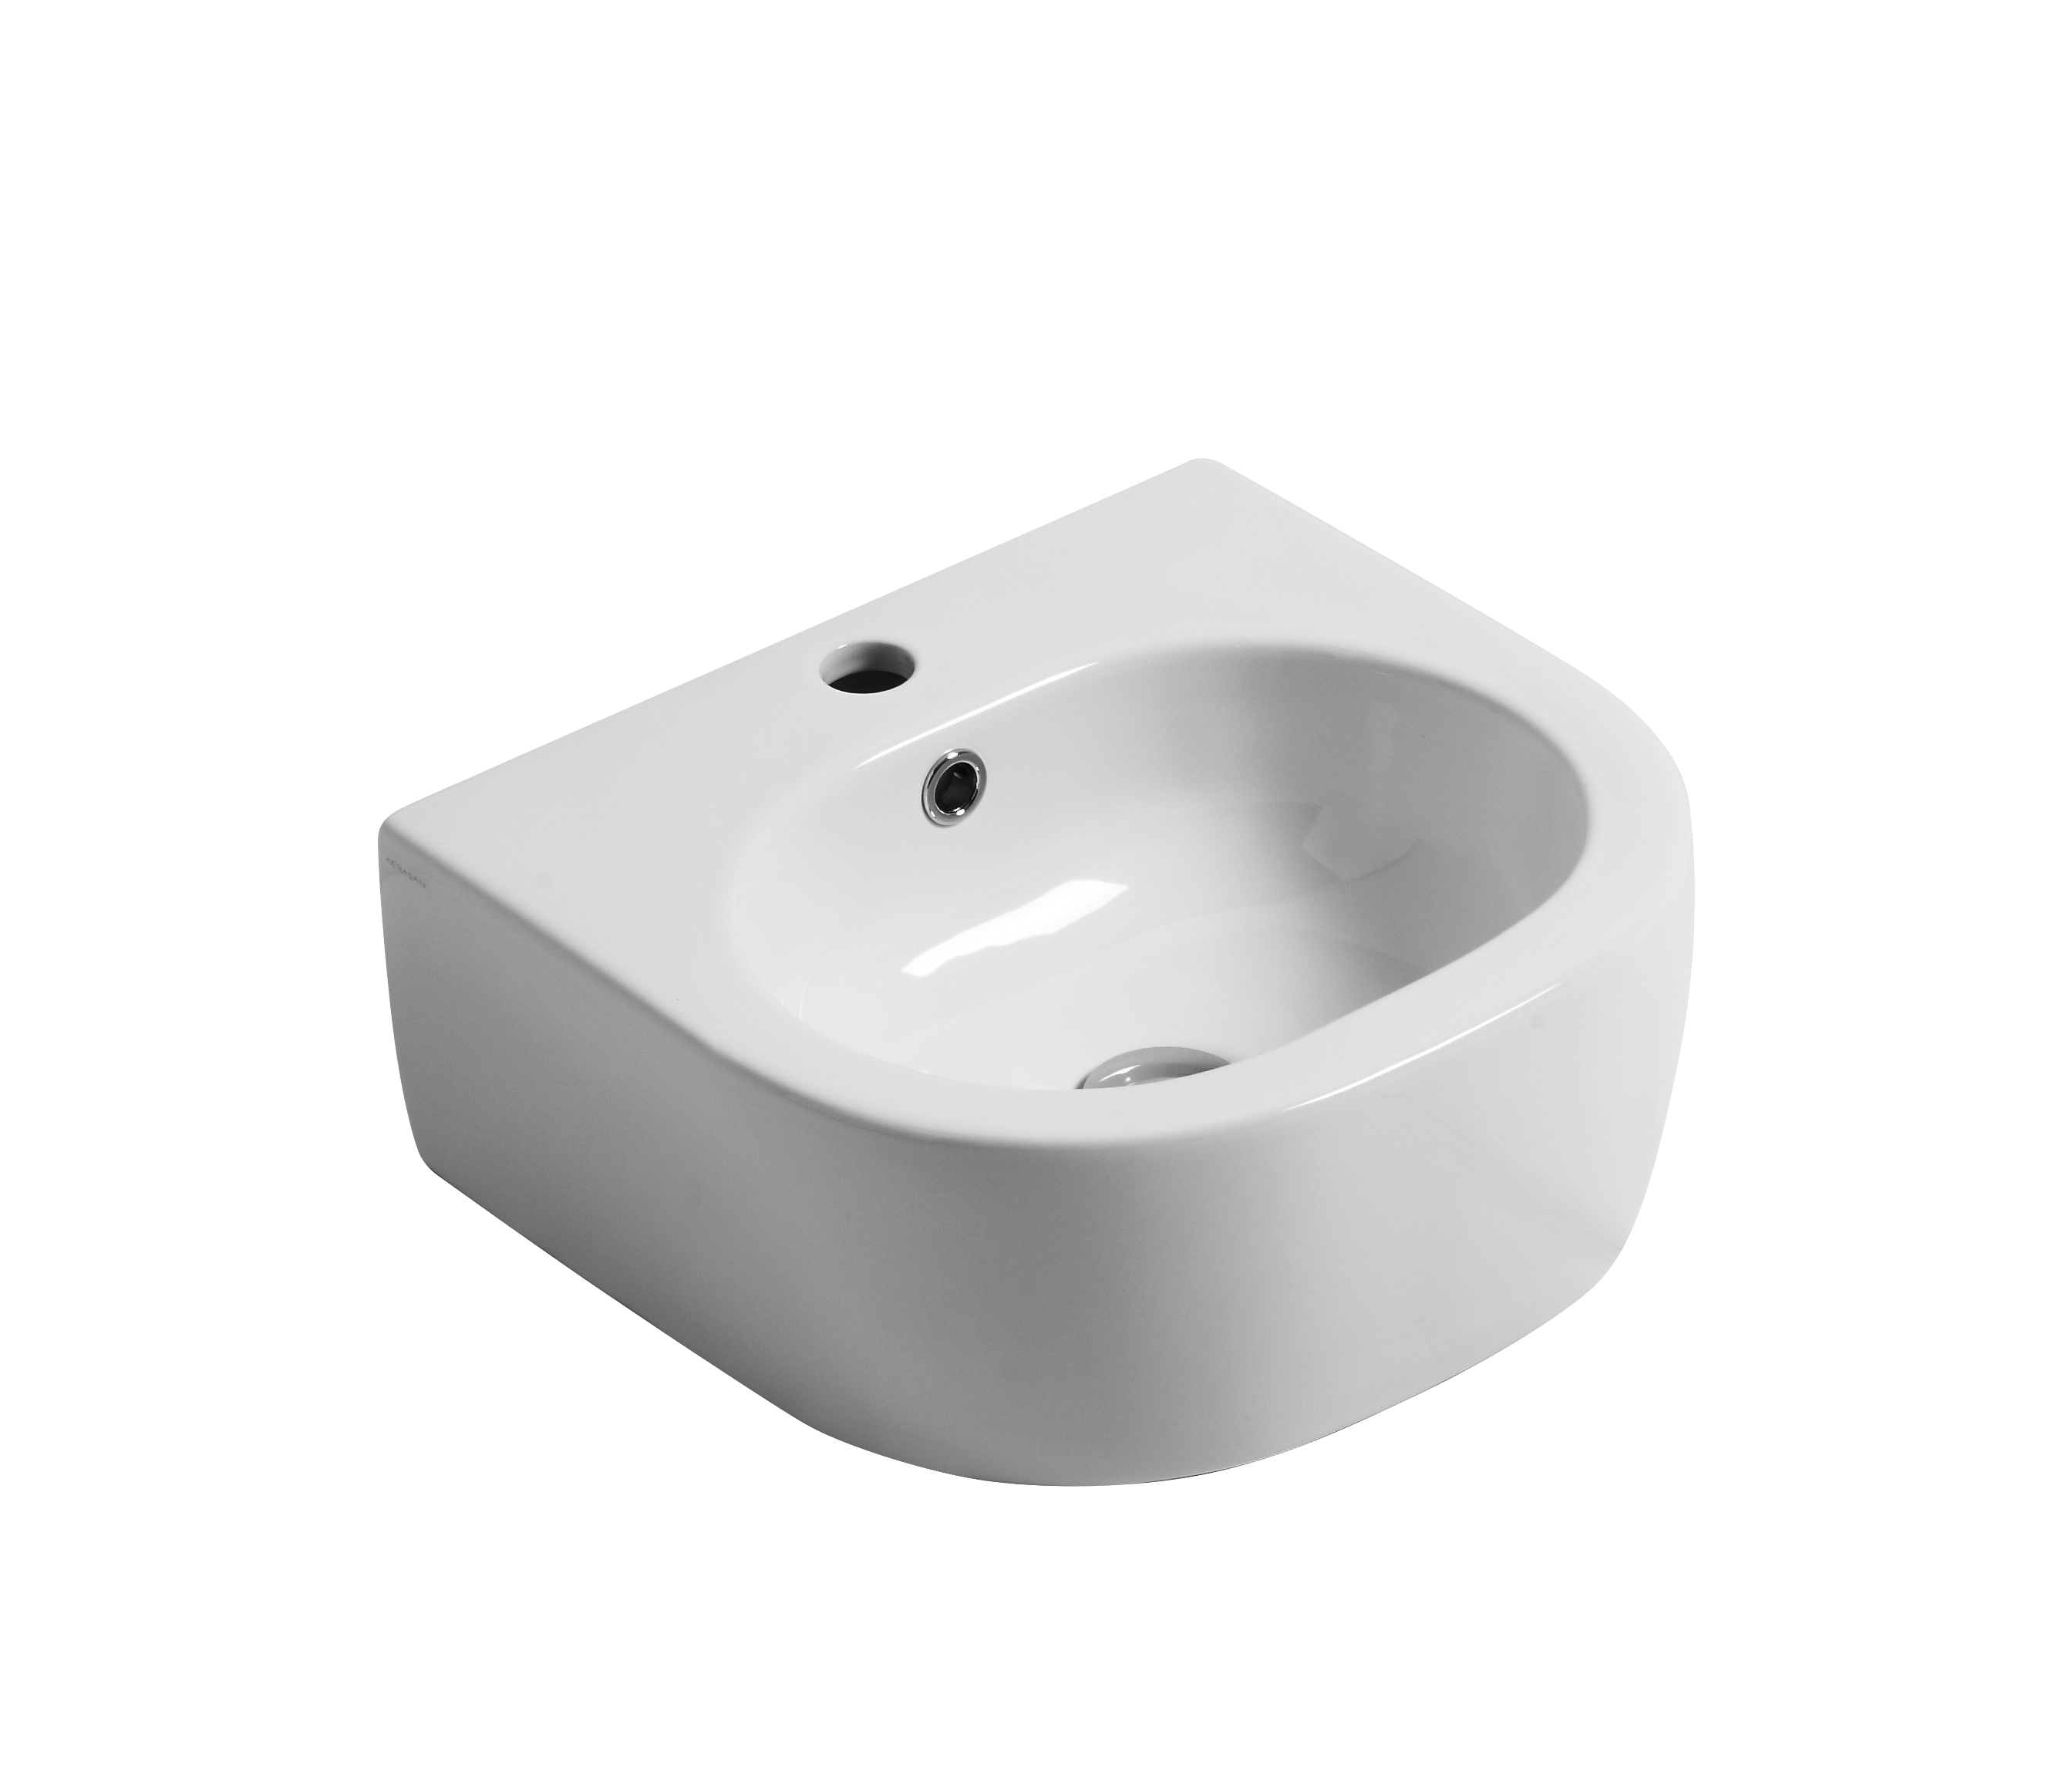 Flo 40cm Wall hung or counter top basin